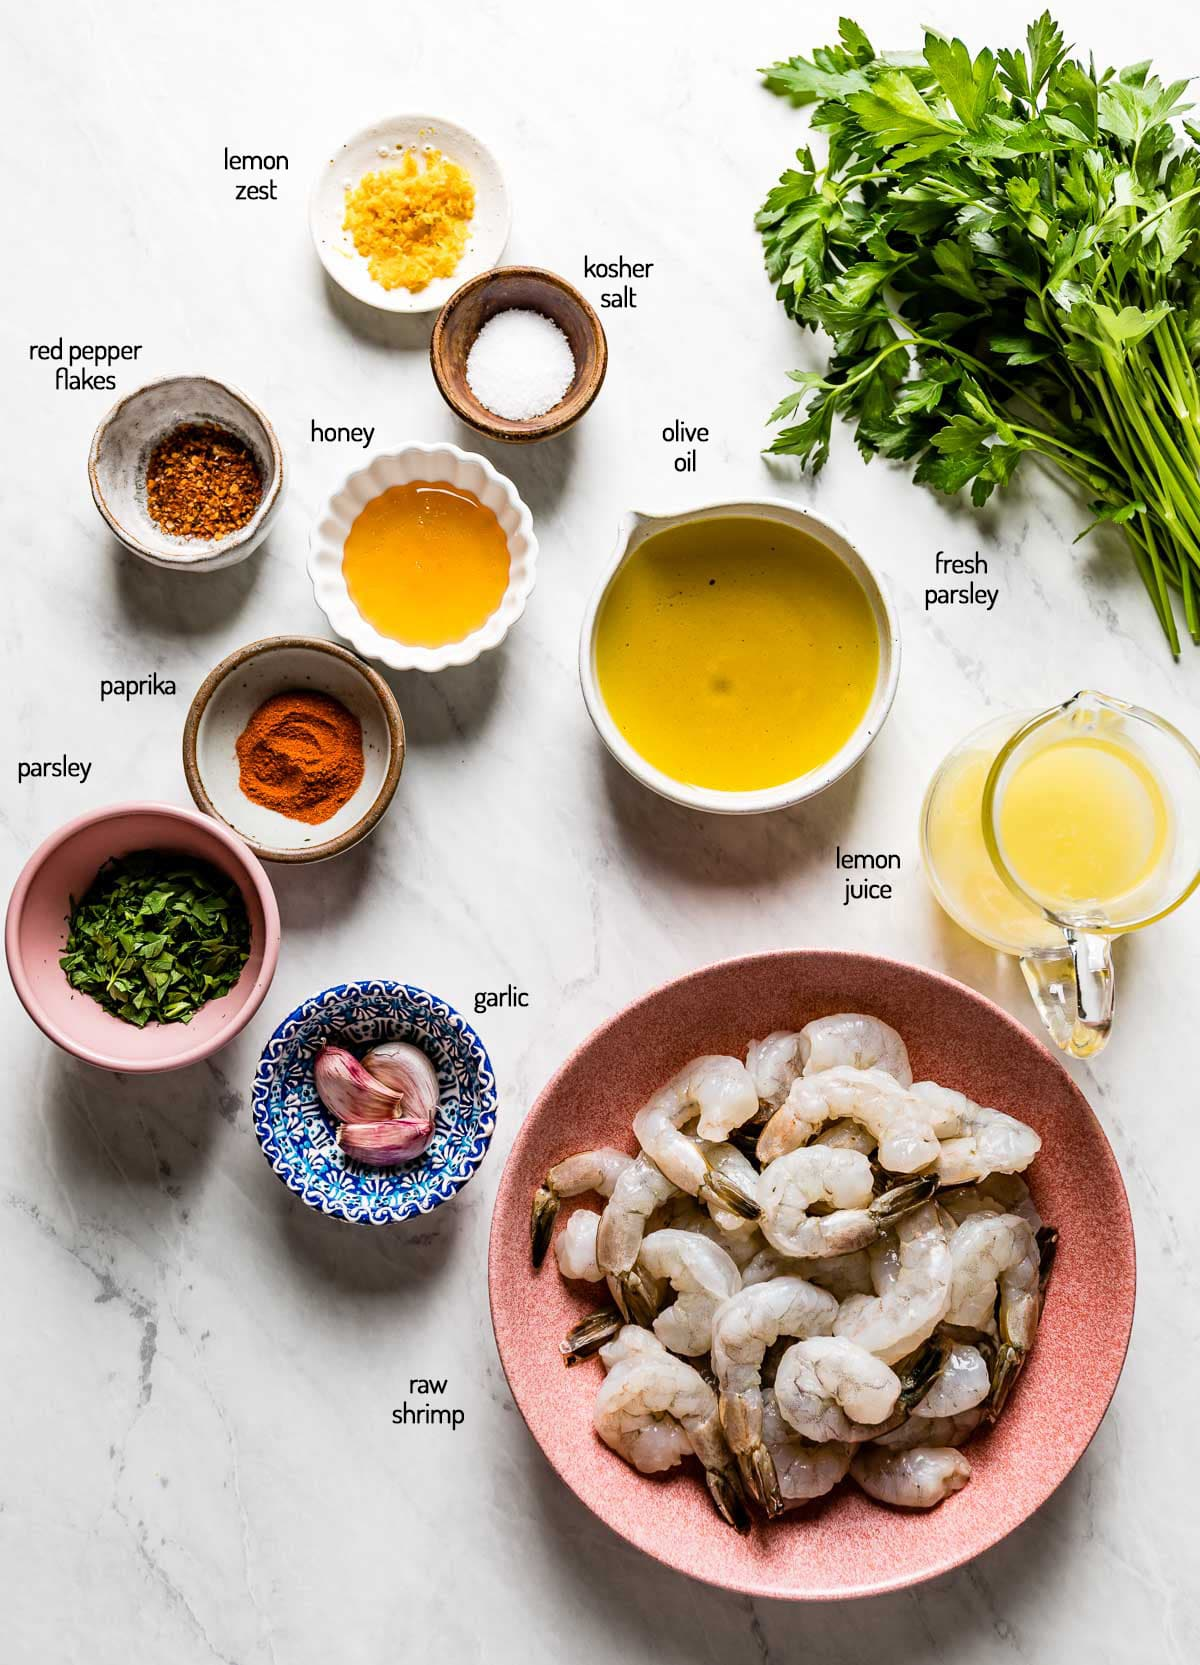 Ingredients are laid out on a white backdrop